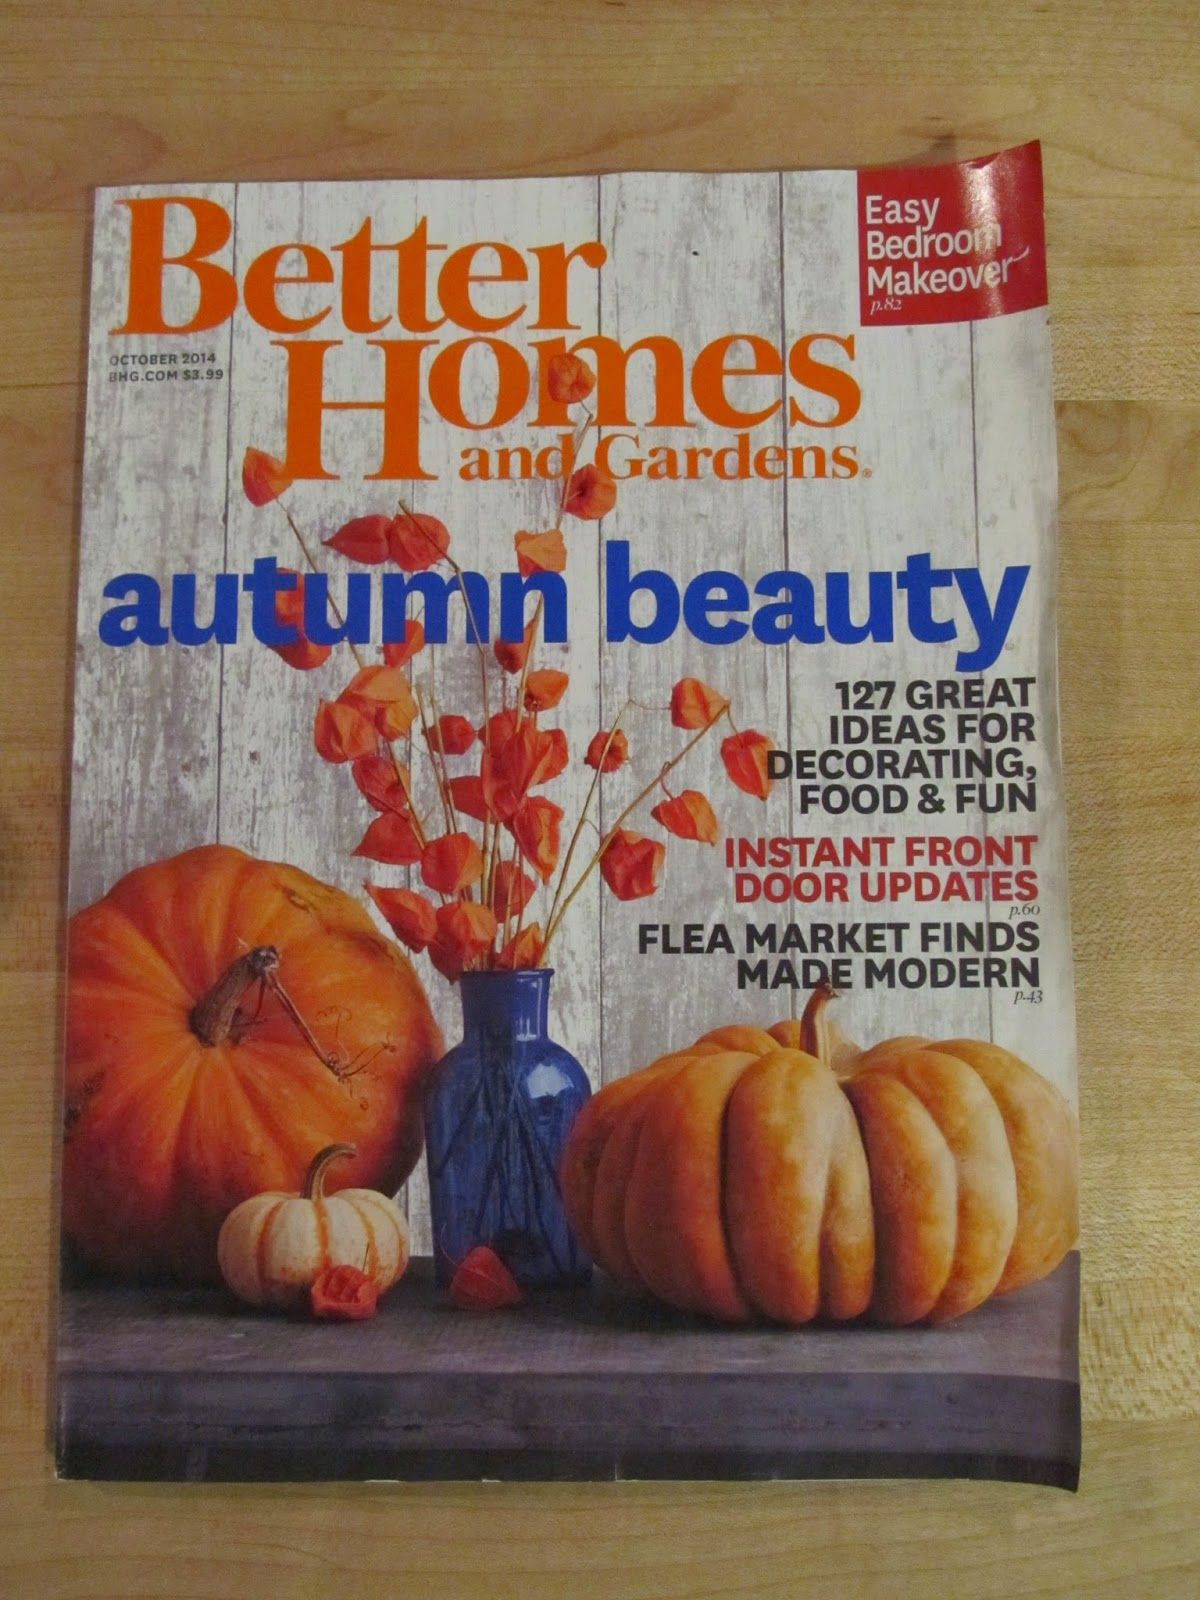 fa72165eb3f9d177835bbee066d2d8c7 - Better Homes And Gardens Magazine July 2014